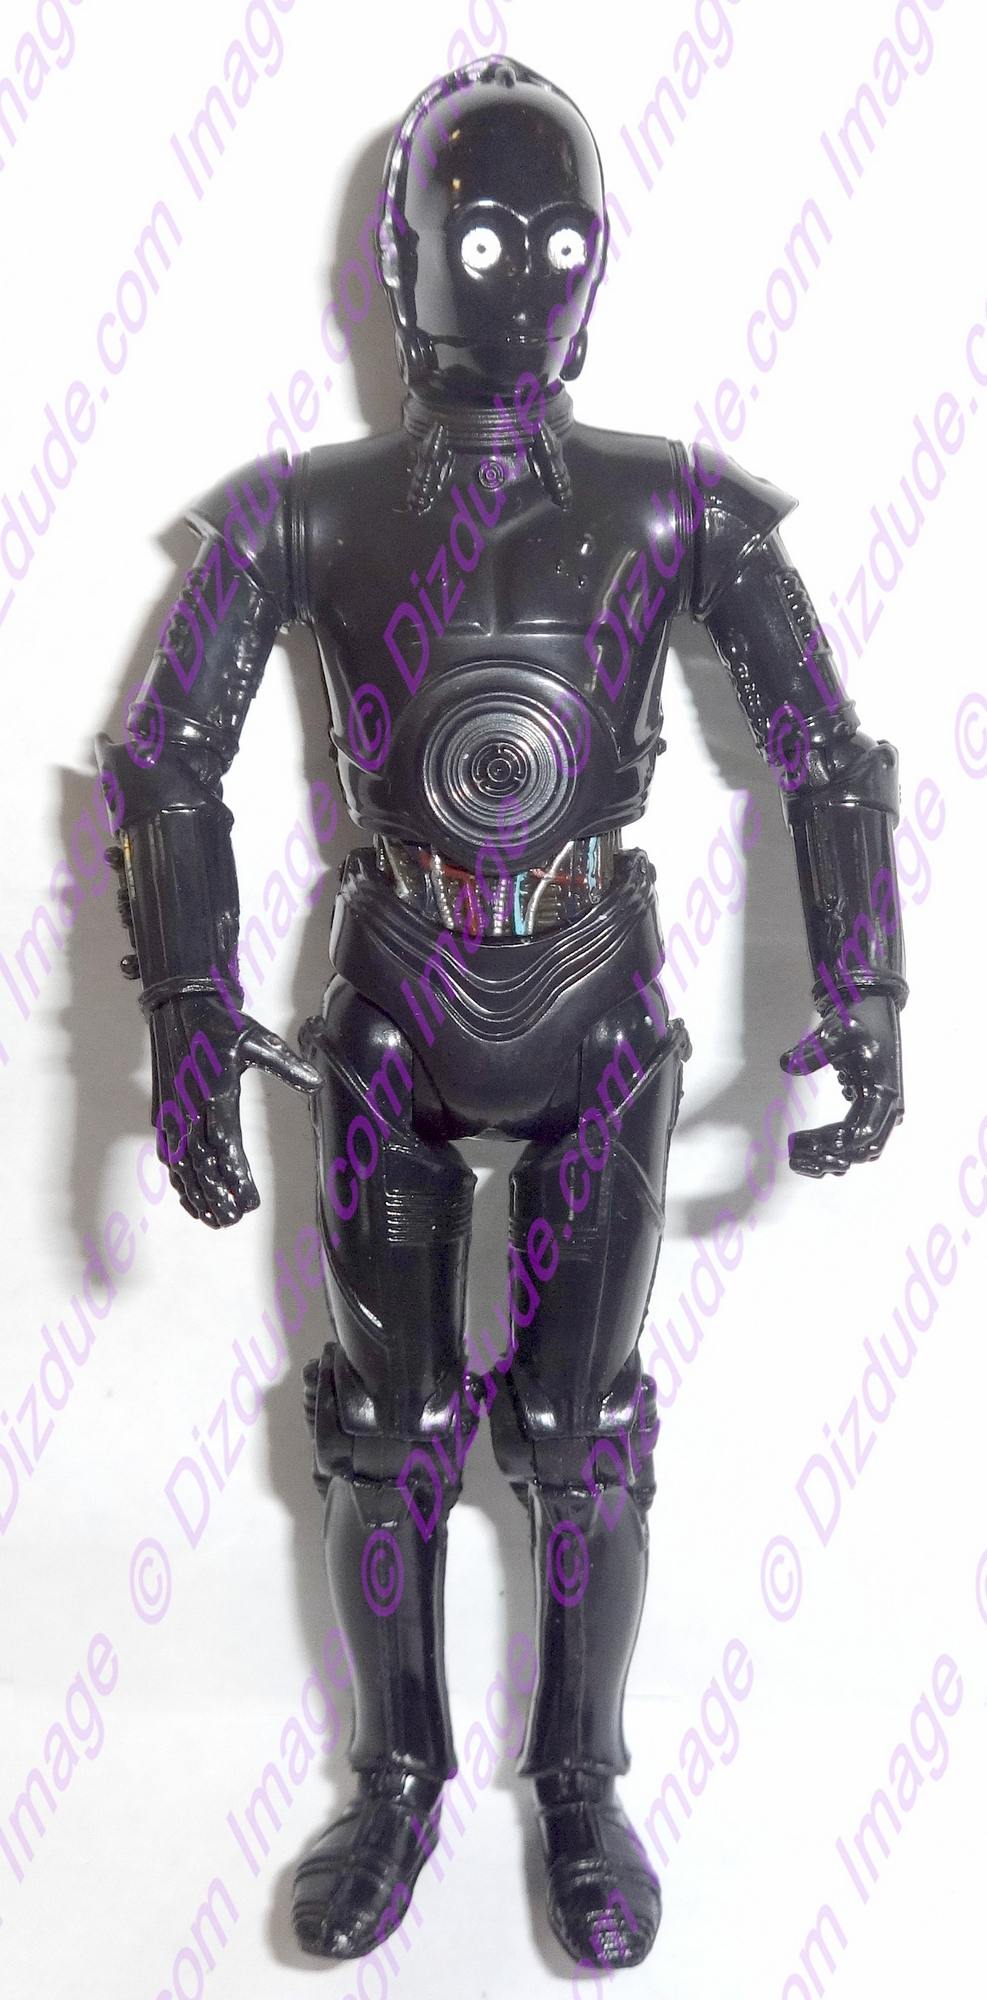 Black 3PO Protocol Droid from Disney Star Wars Build-A-Droid Factory